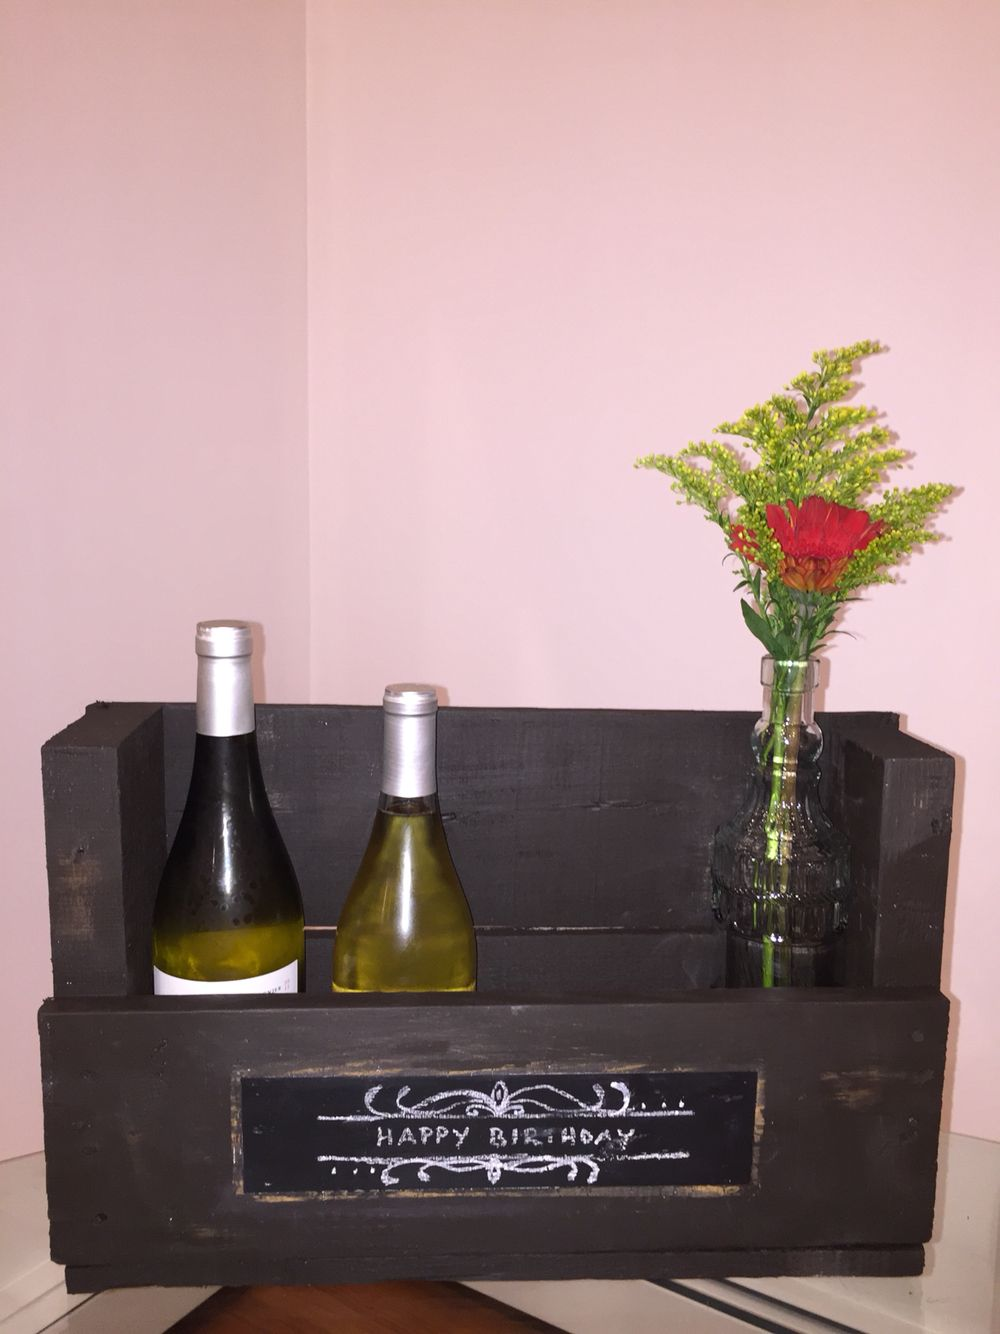 DIY wine bottle rack made from a pallet. Chalk design on front